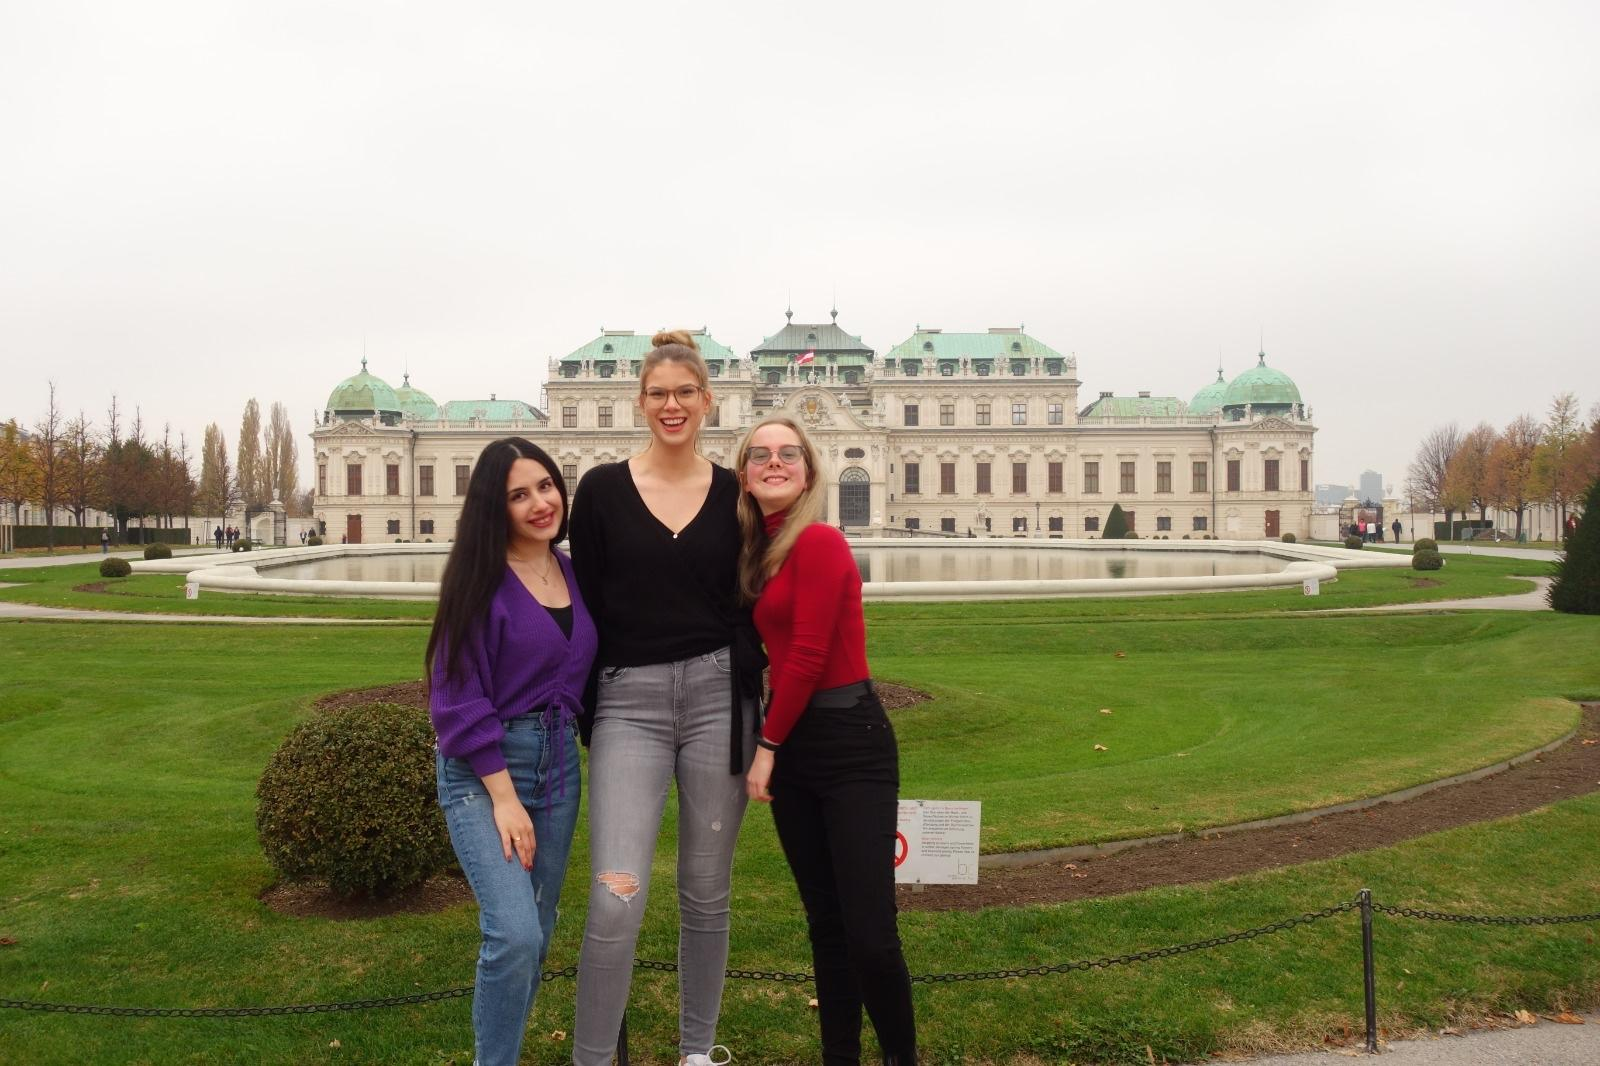 With friends in front of Belvedere Palace